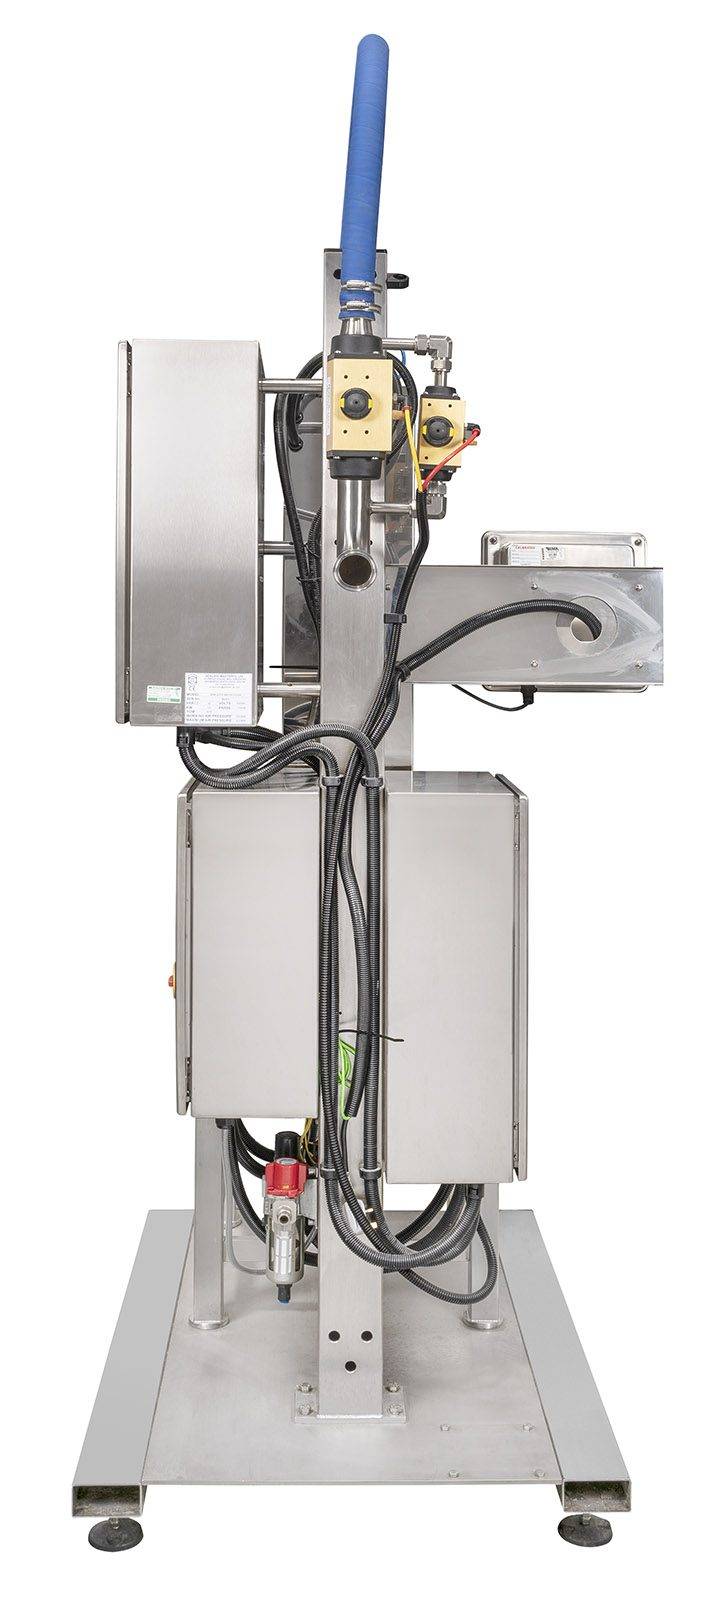 Adelphi Masterfil S5000-S Weigh Scale Semi-Automatic Filling Machine for Chemicals